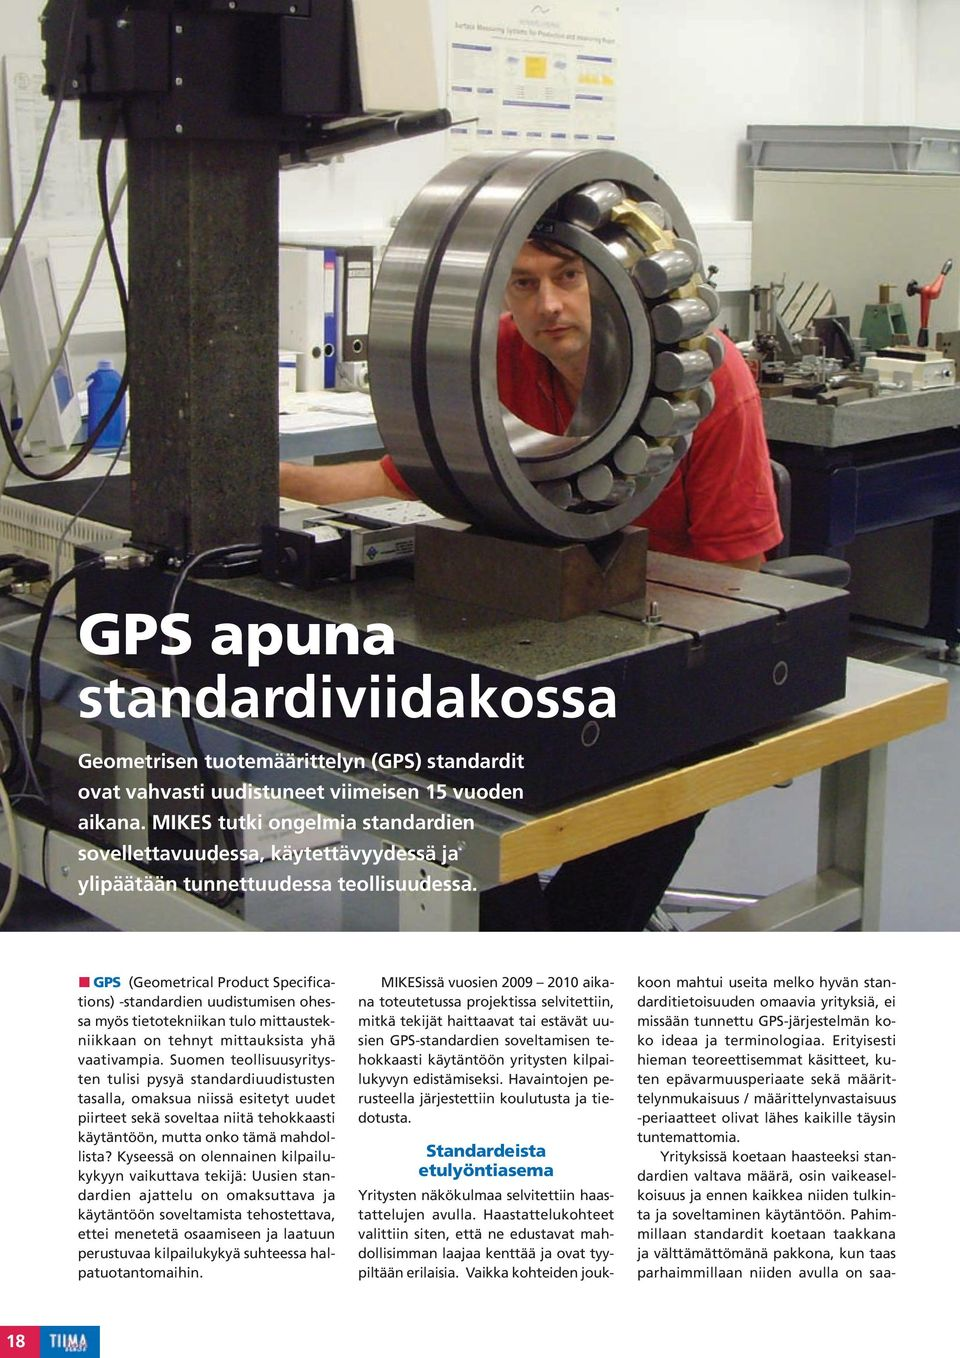 GPS (Geometrical Product Specifications) -standardien uudistumisen ohessa myös tietotekniikan tulo mittaustekniikkaan on tehnyt mittauksista yhä vaativampia.